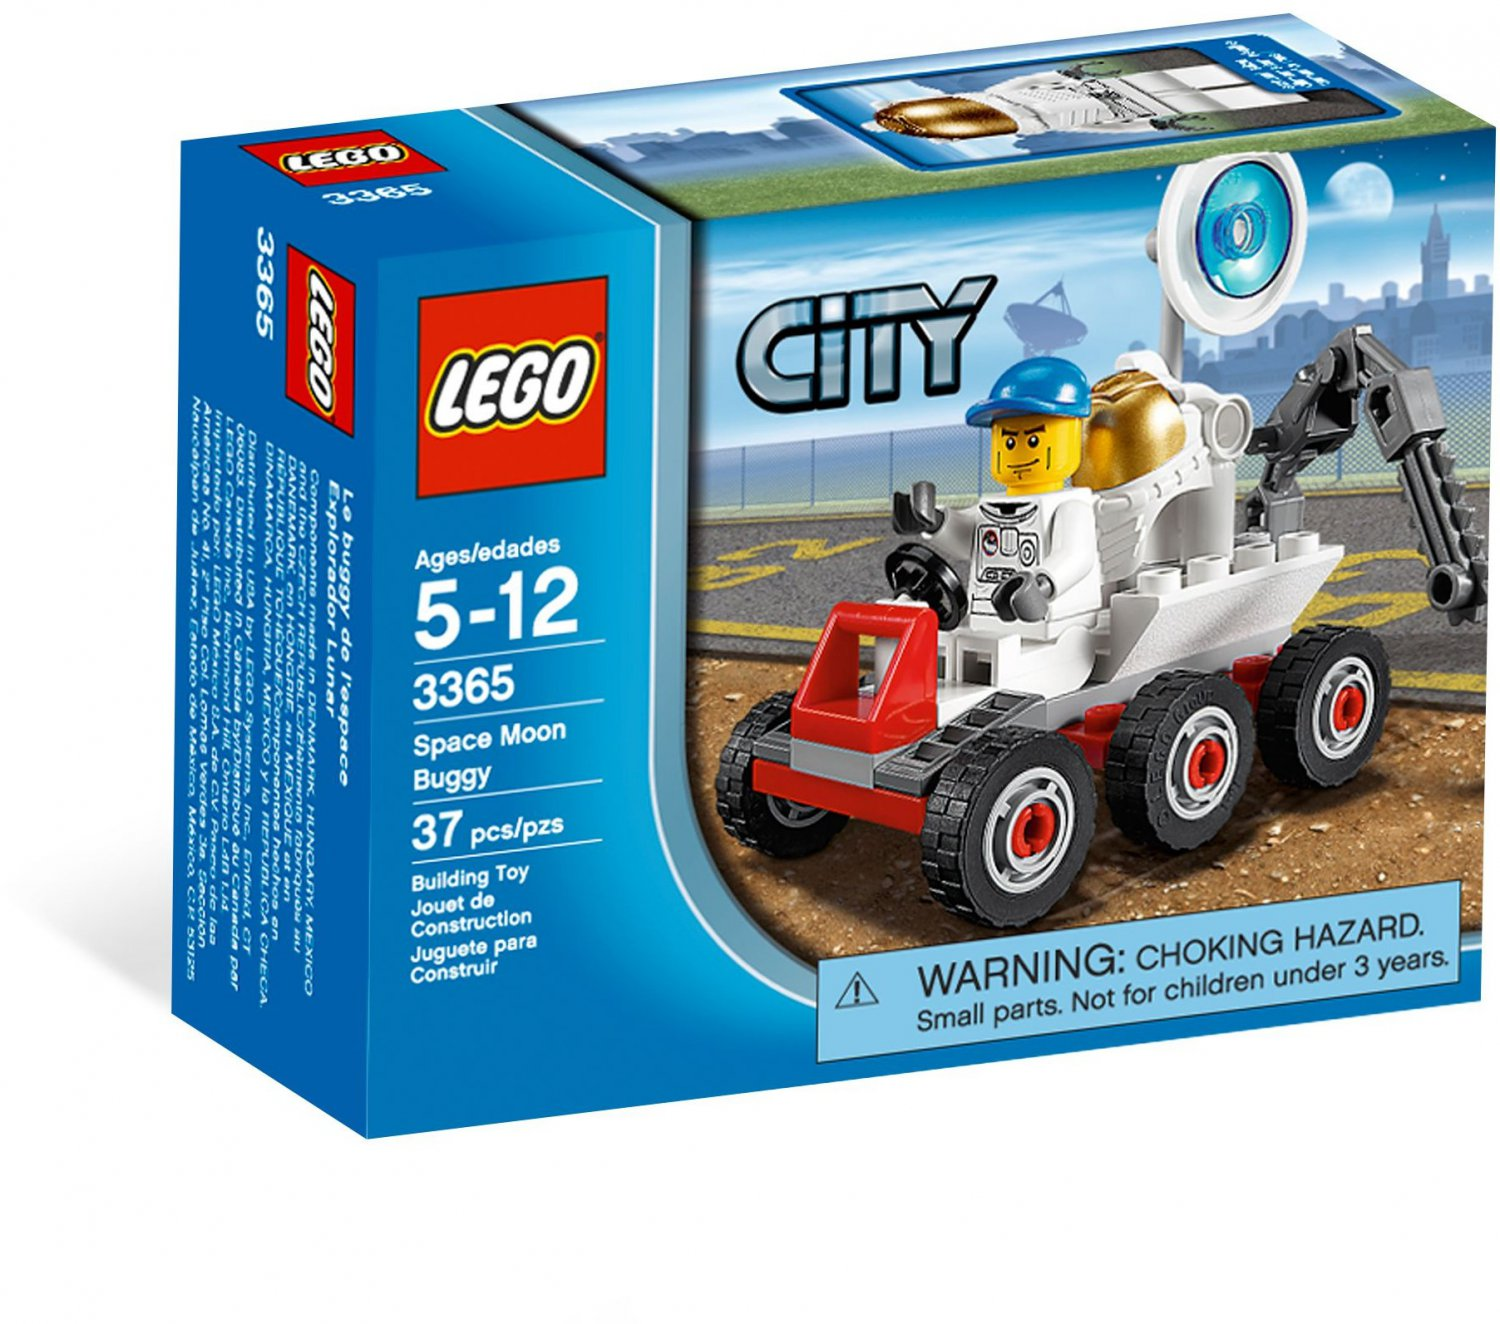 LEGO® City Space Moon Buggy 3365 (2011) New Factory Sealed Set!